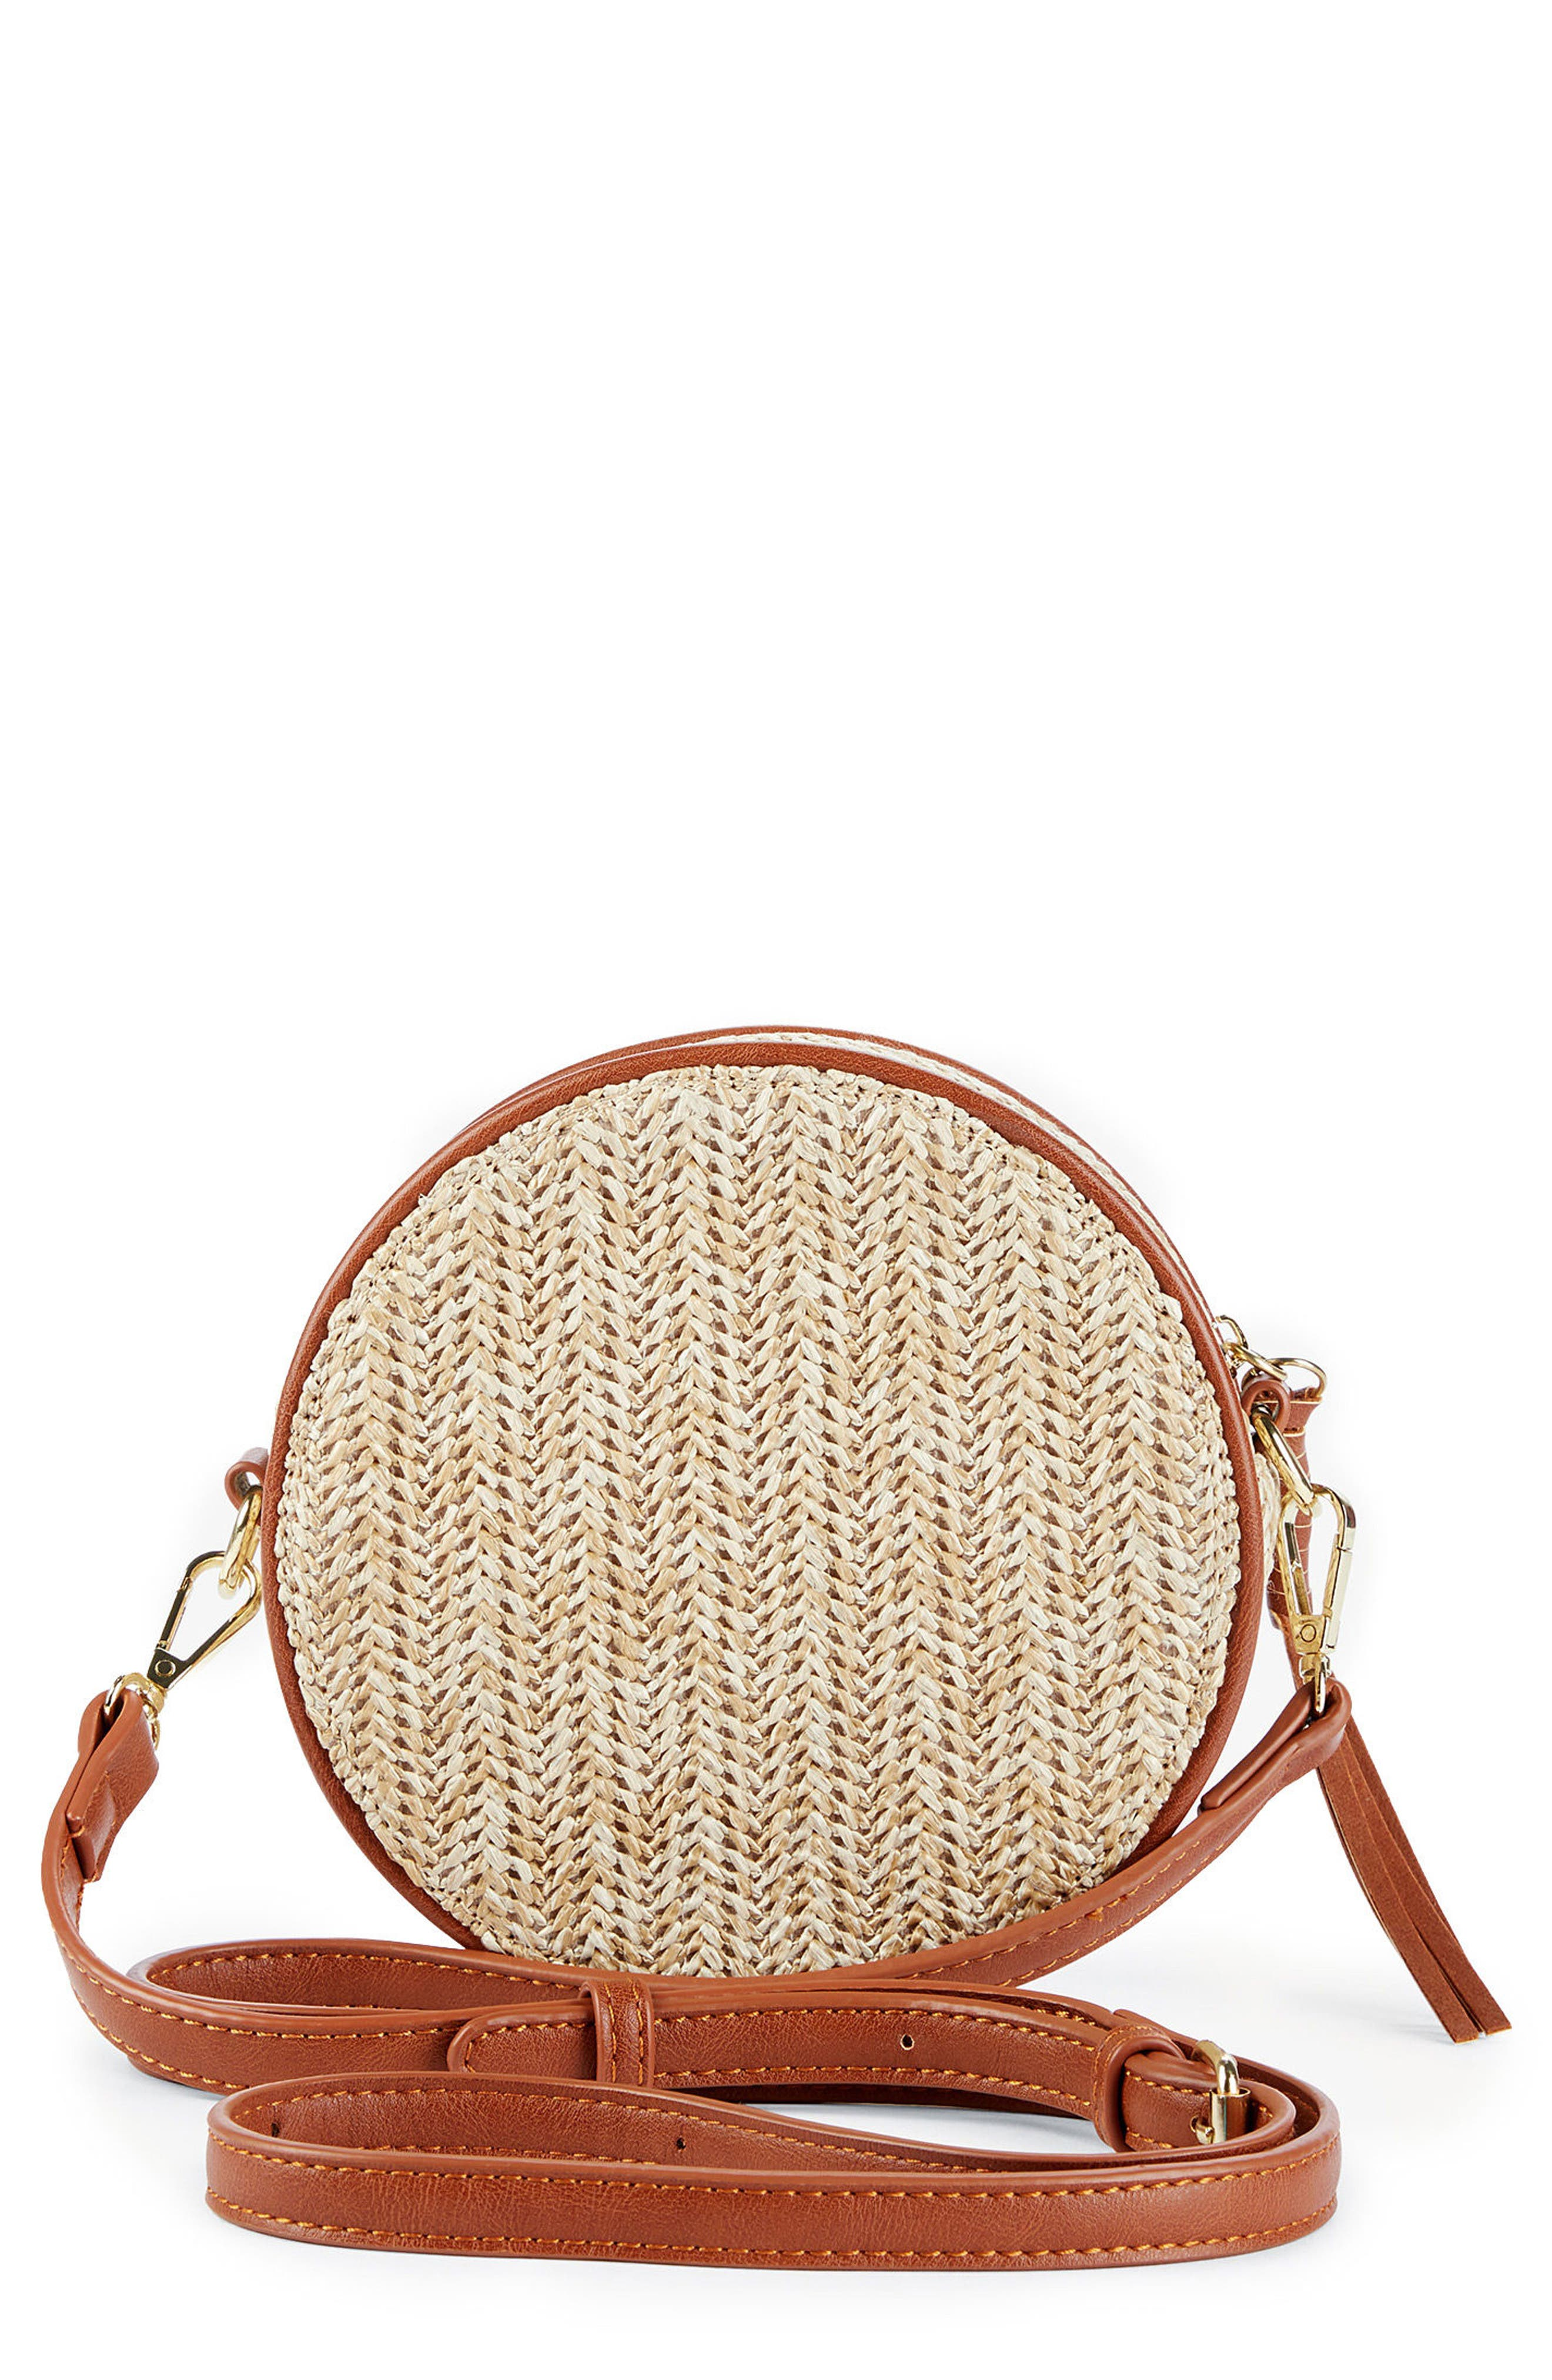 Pipper Small Faux Leather Crossbody Bag,                         Main,                         color, 250